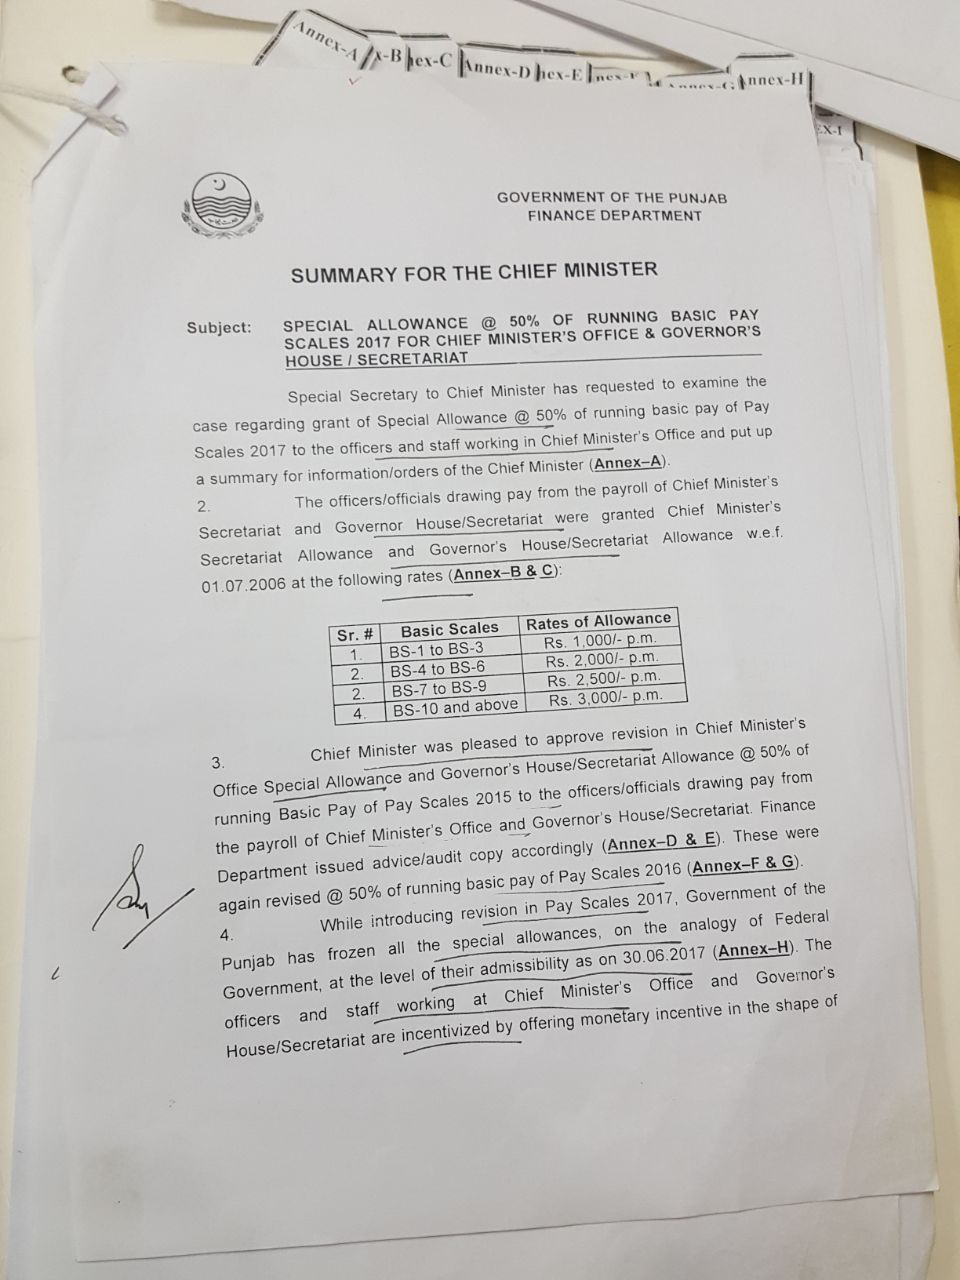 Summary Special Allowance @ 50% of Running Basic Pay Scales 2017 for Chief Minister's Office & Governor's House/Secretariat